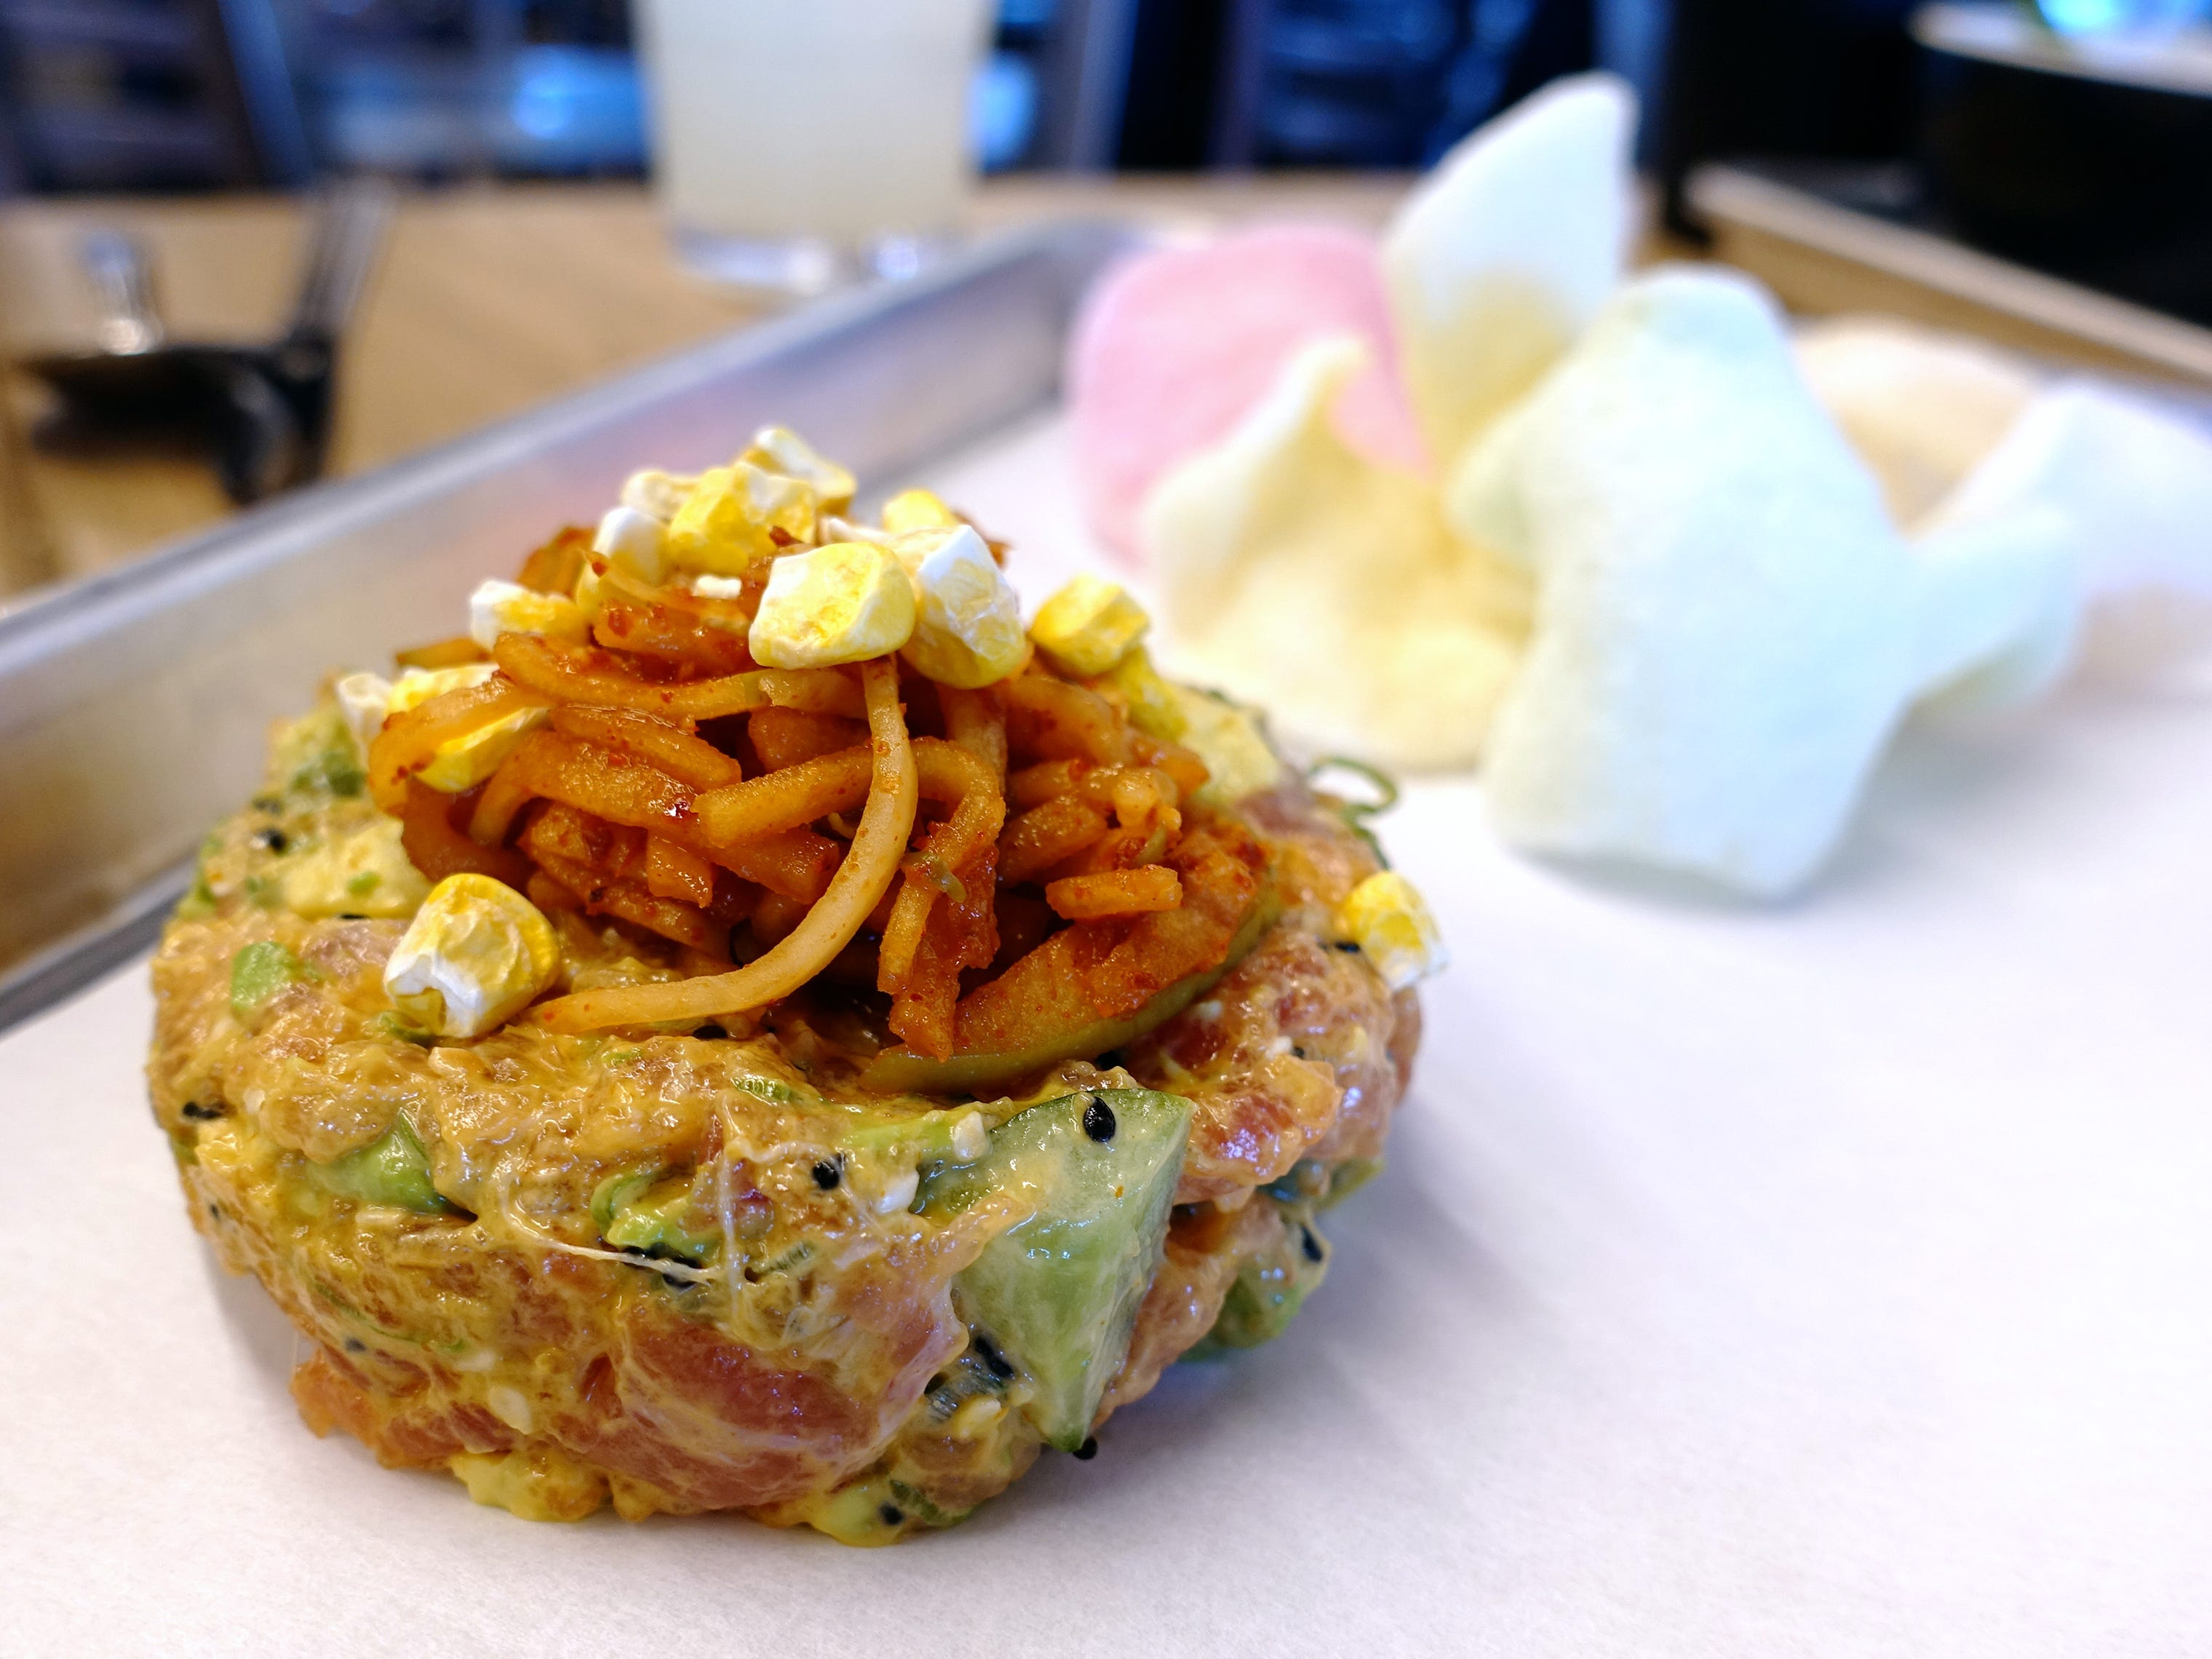 Tuna tartare with spicy Kewpie mayo, cucumber, jalapeno, scallion, corn, green apple kimchi and shrimp chips at Chula Seafood Uptown in Phoenix.